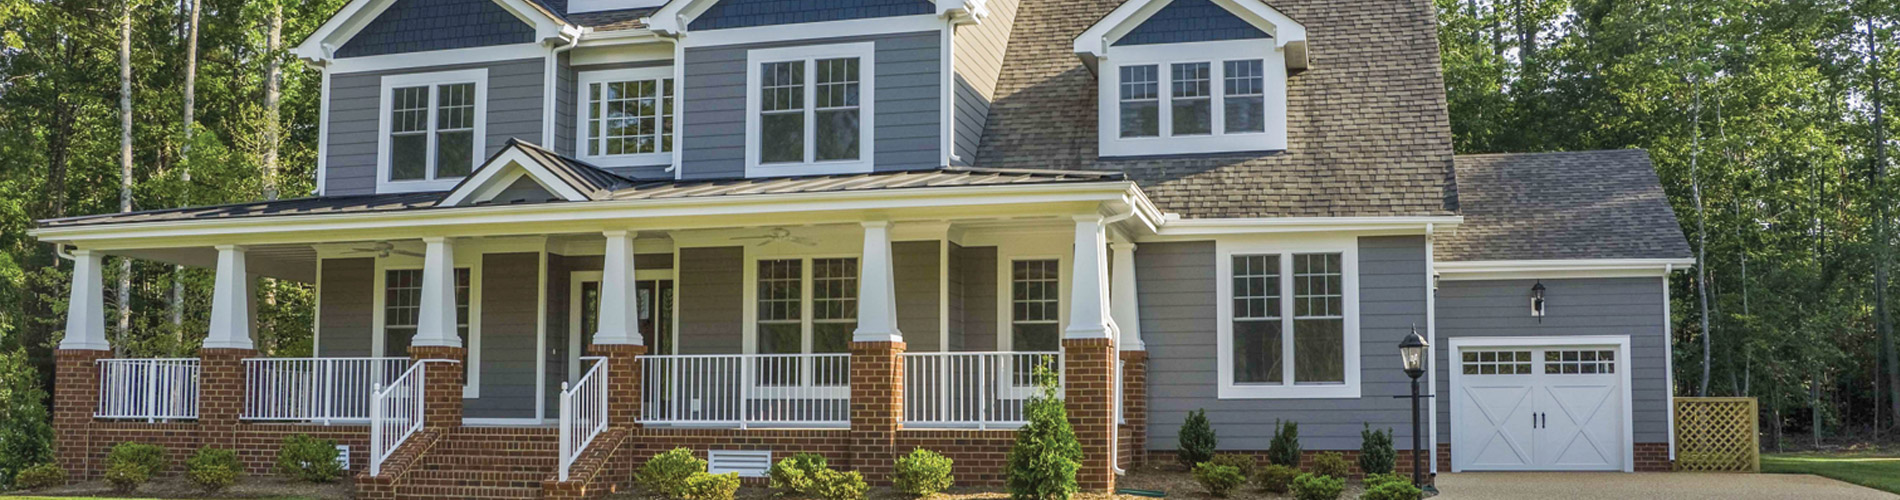 Roofing Repair Troy IL